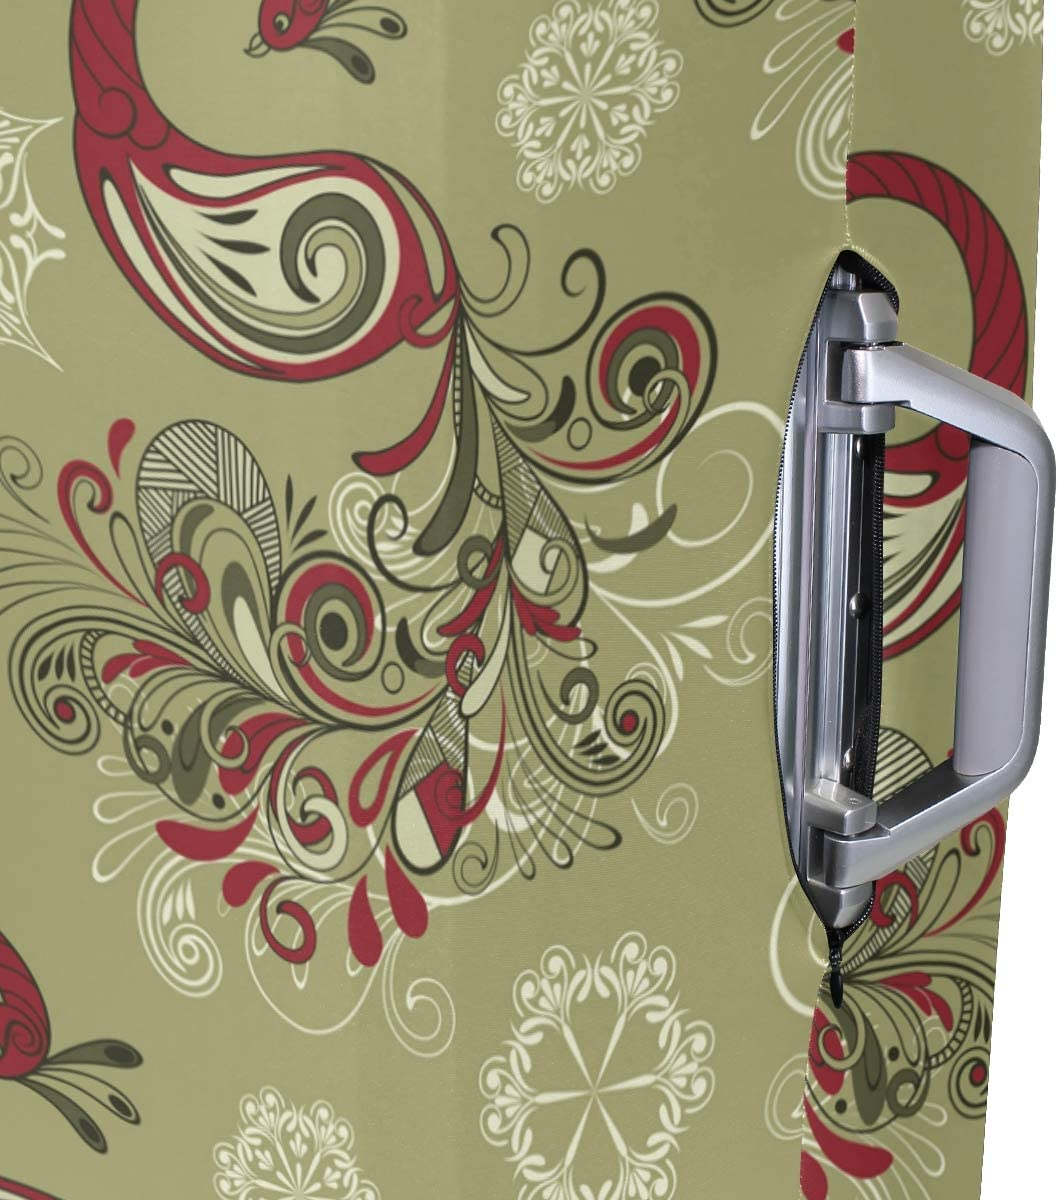 GIOVANIOR Winter Peacocks And Snowflakes Luggage Cover Suitcase Protector Carry On Covers